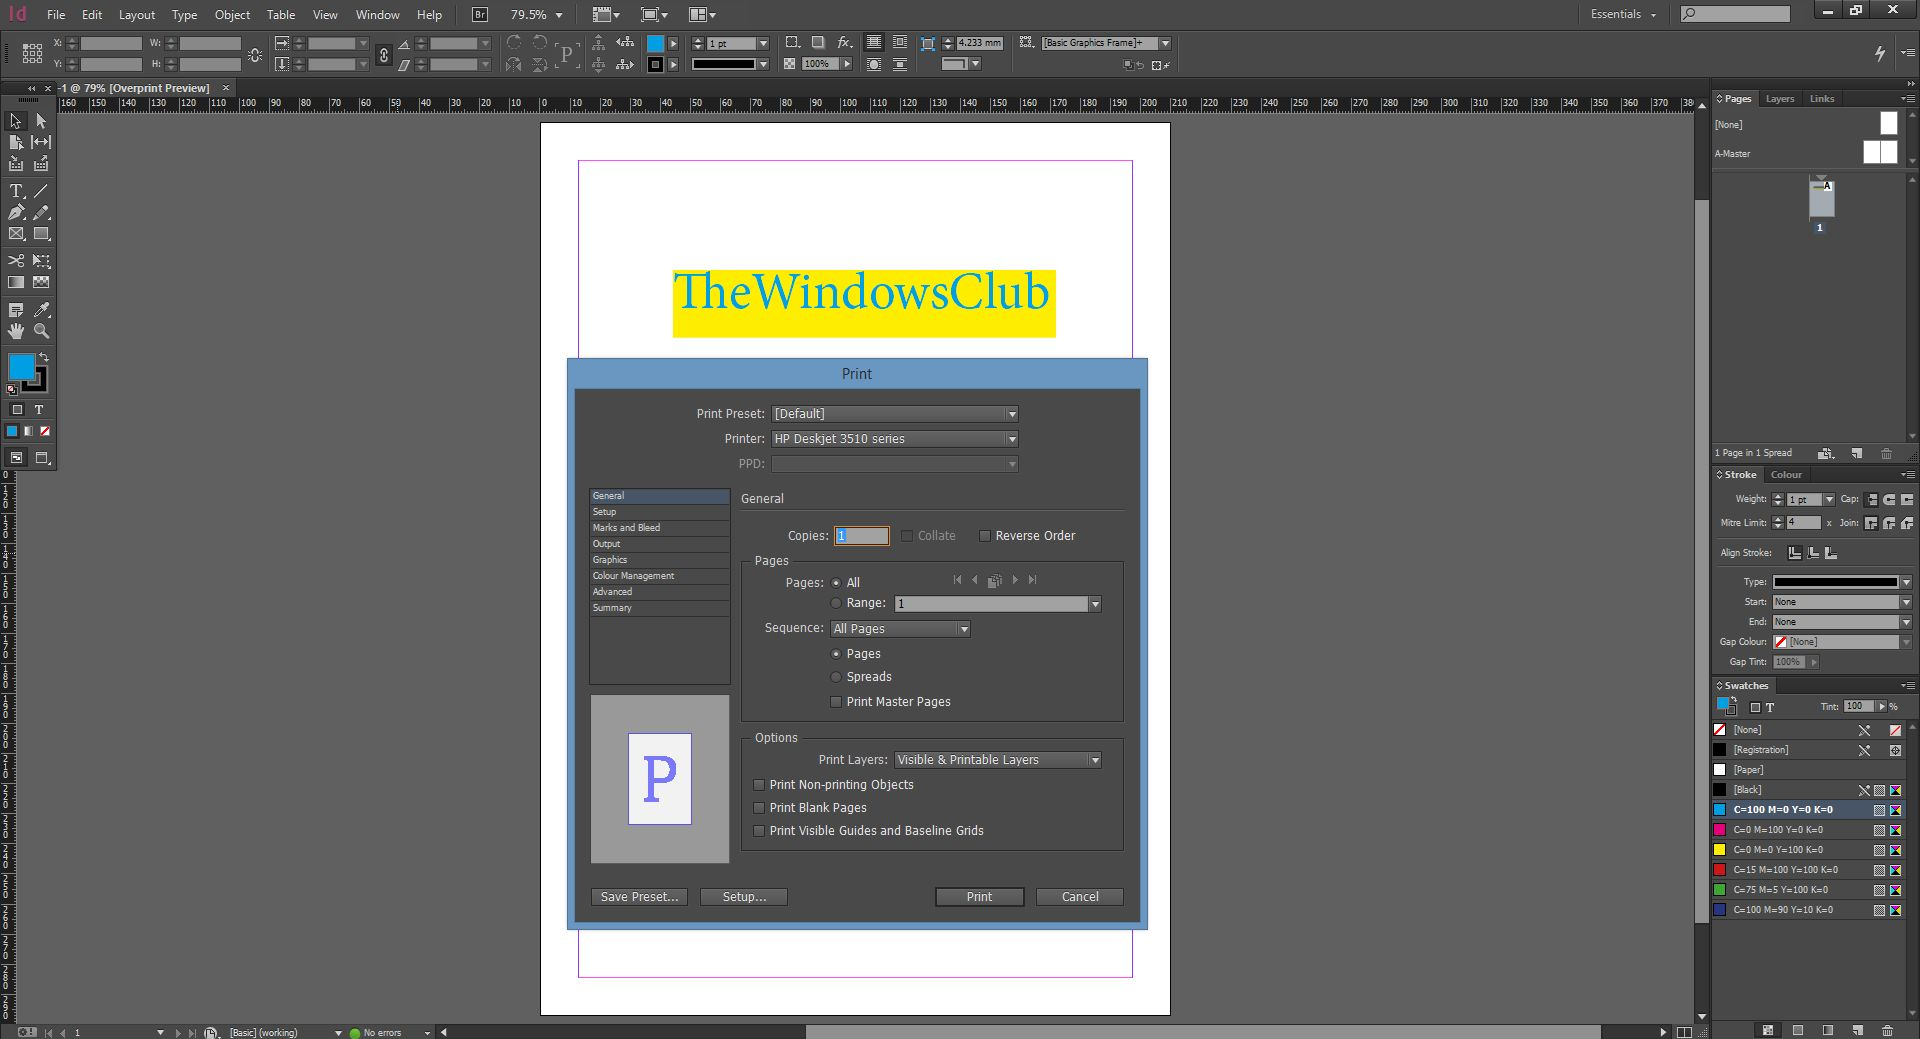 Print_InDesign CC 2014